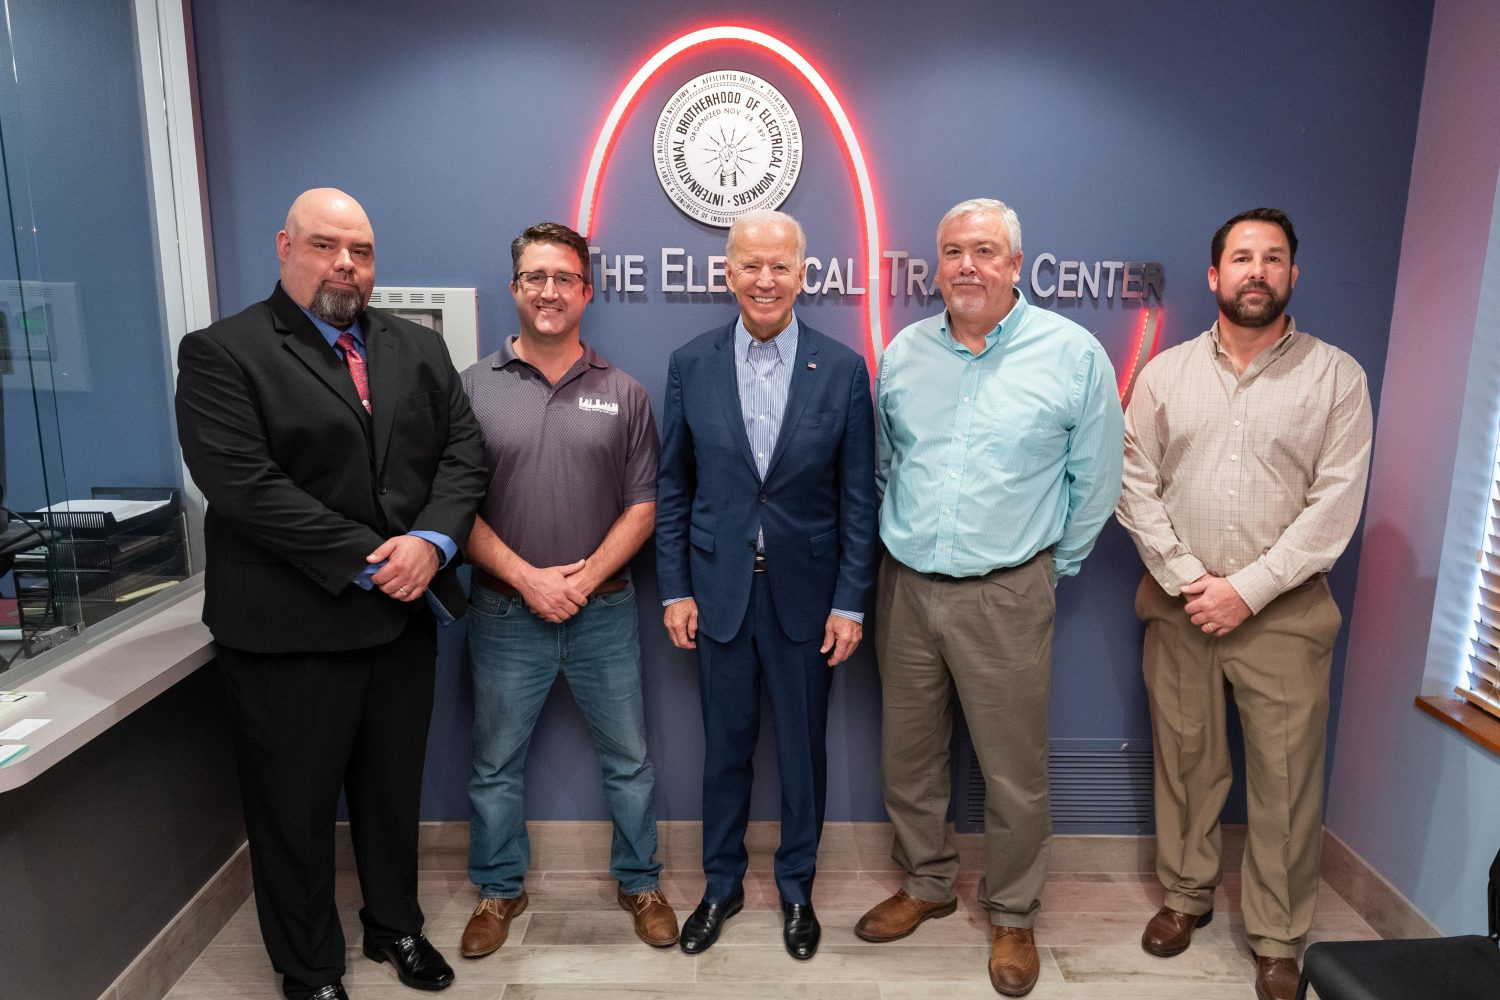 Democratic Presidential Primary Candidate Joe Biden Tours Electrical Trades Center